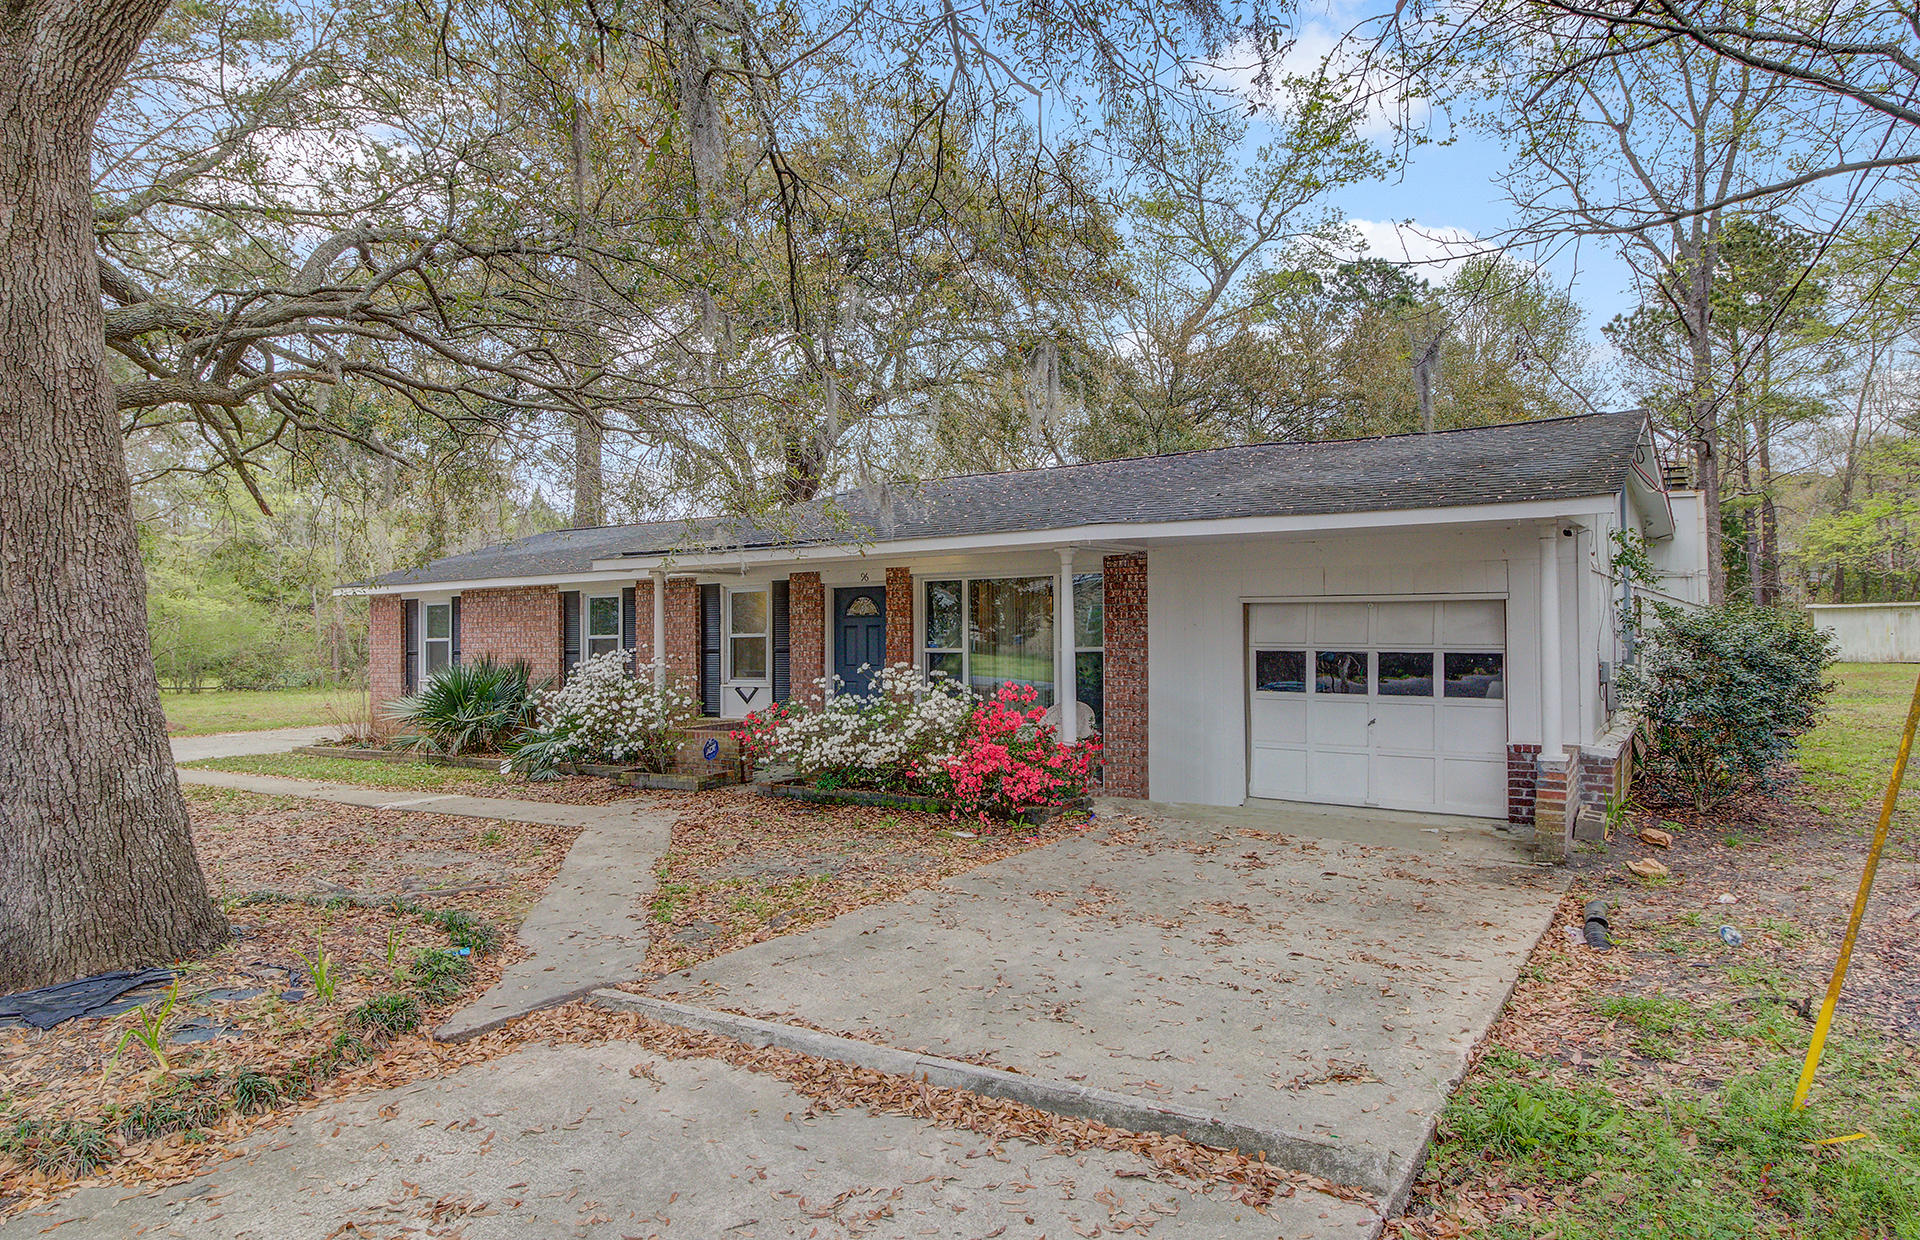 Tranquil Acres Homes For Sale - 96 Tranquil, Ladson, SC - 3